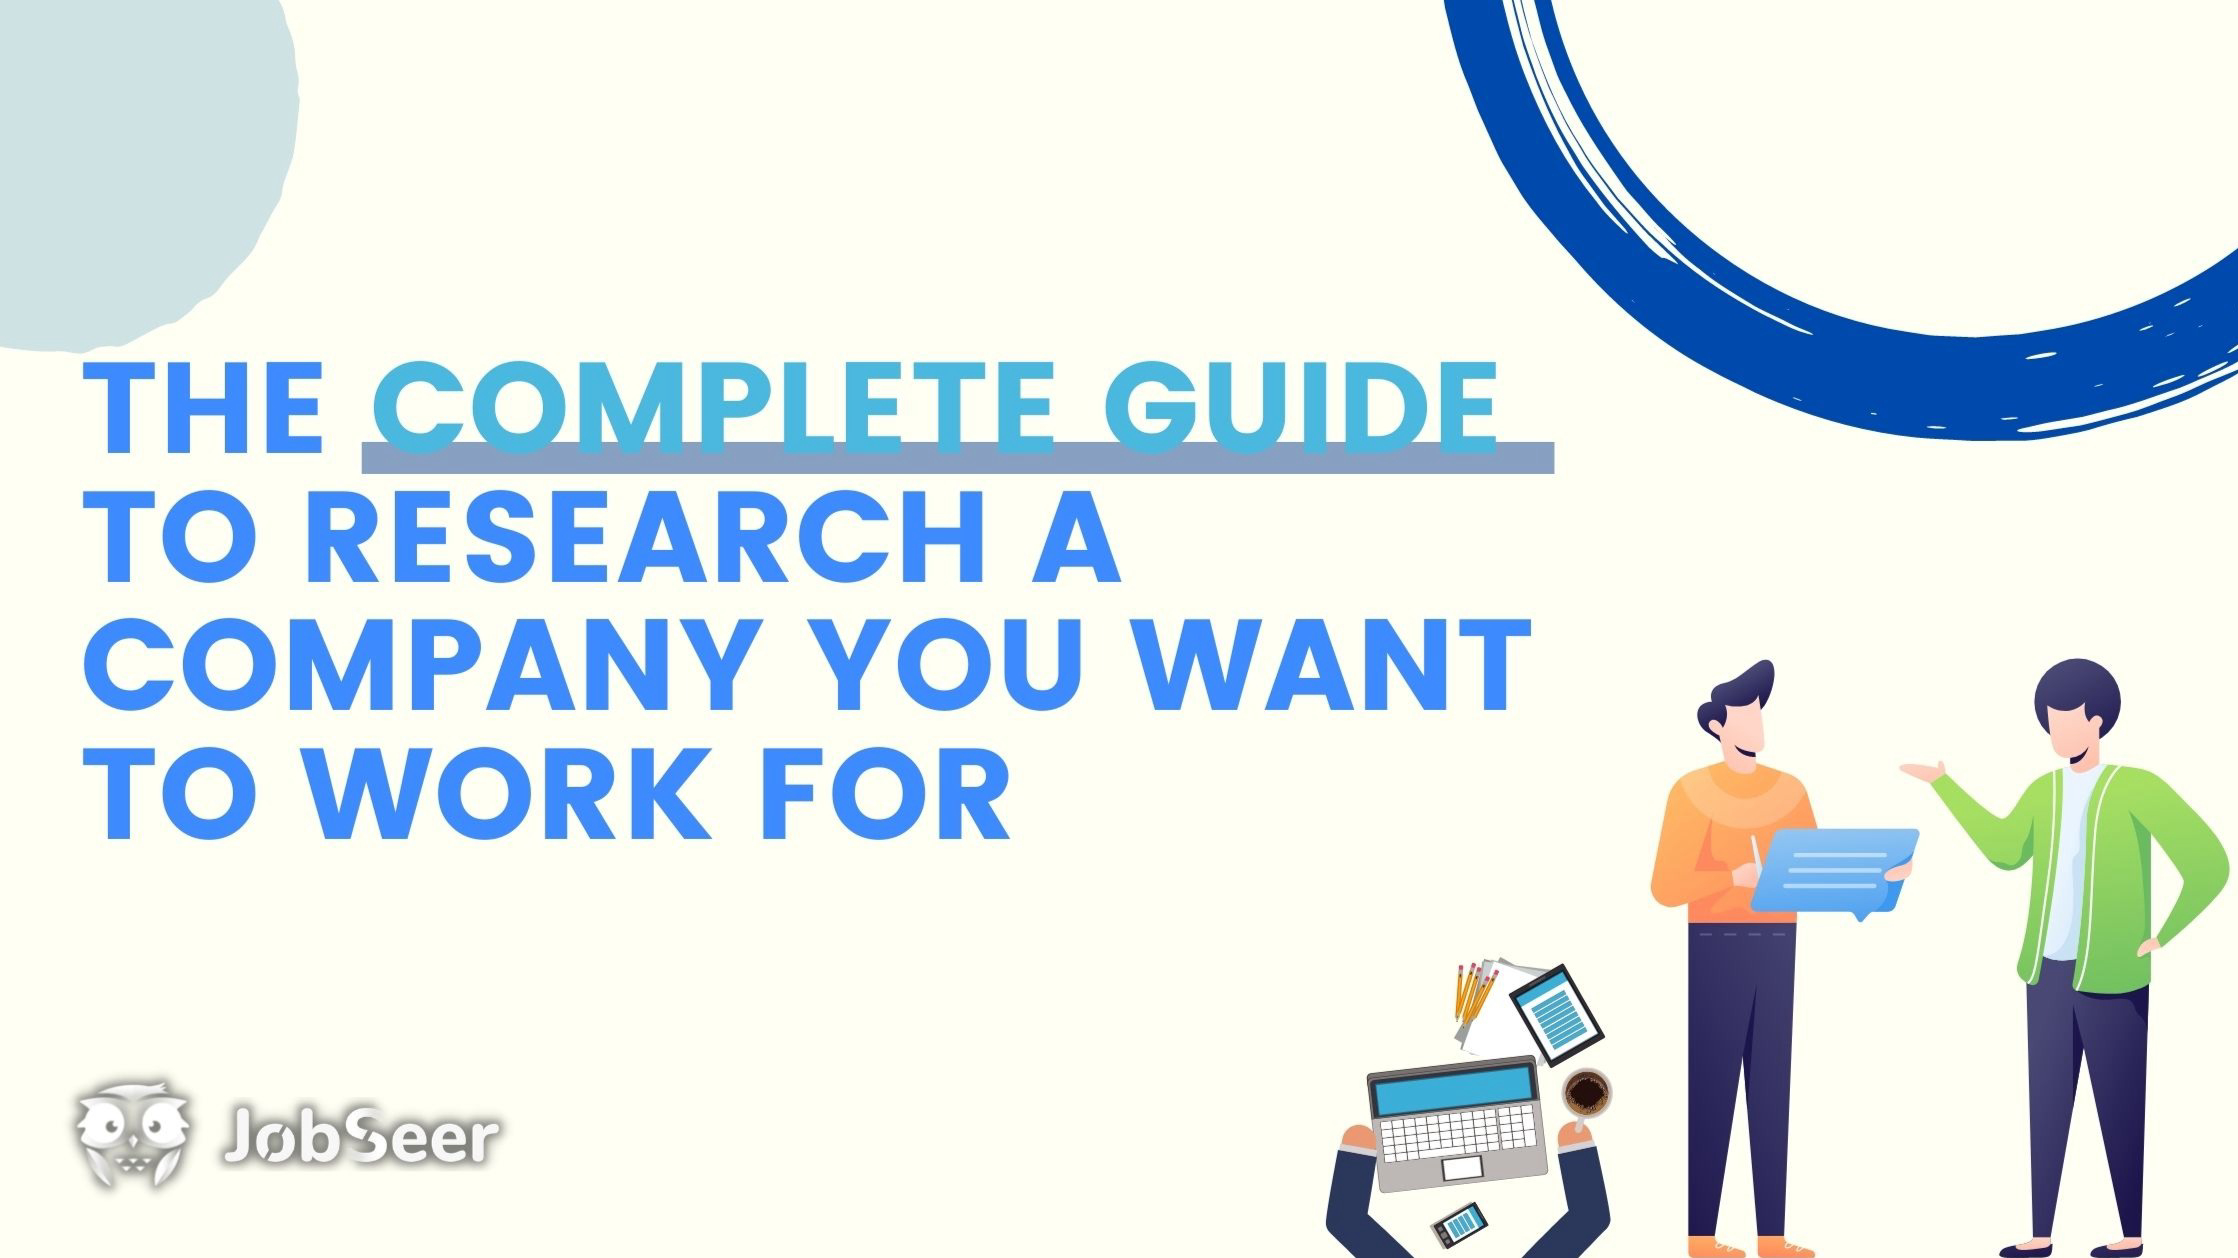 the-complete-guide-to-research-a-company-you-want-to-work-for